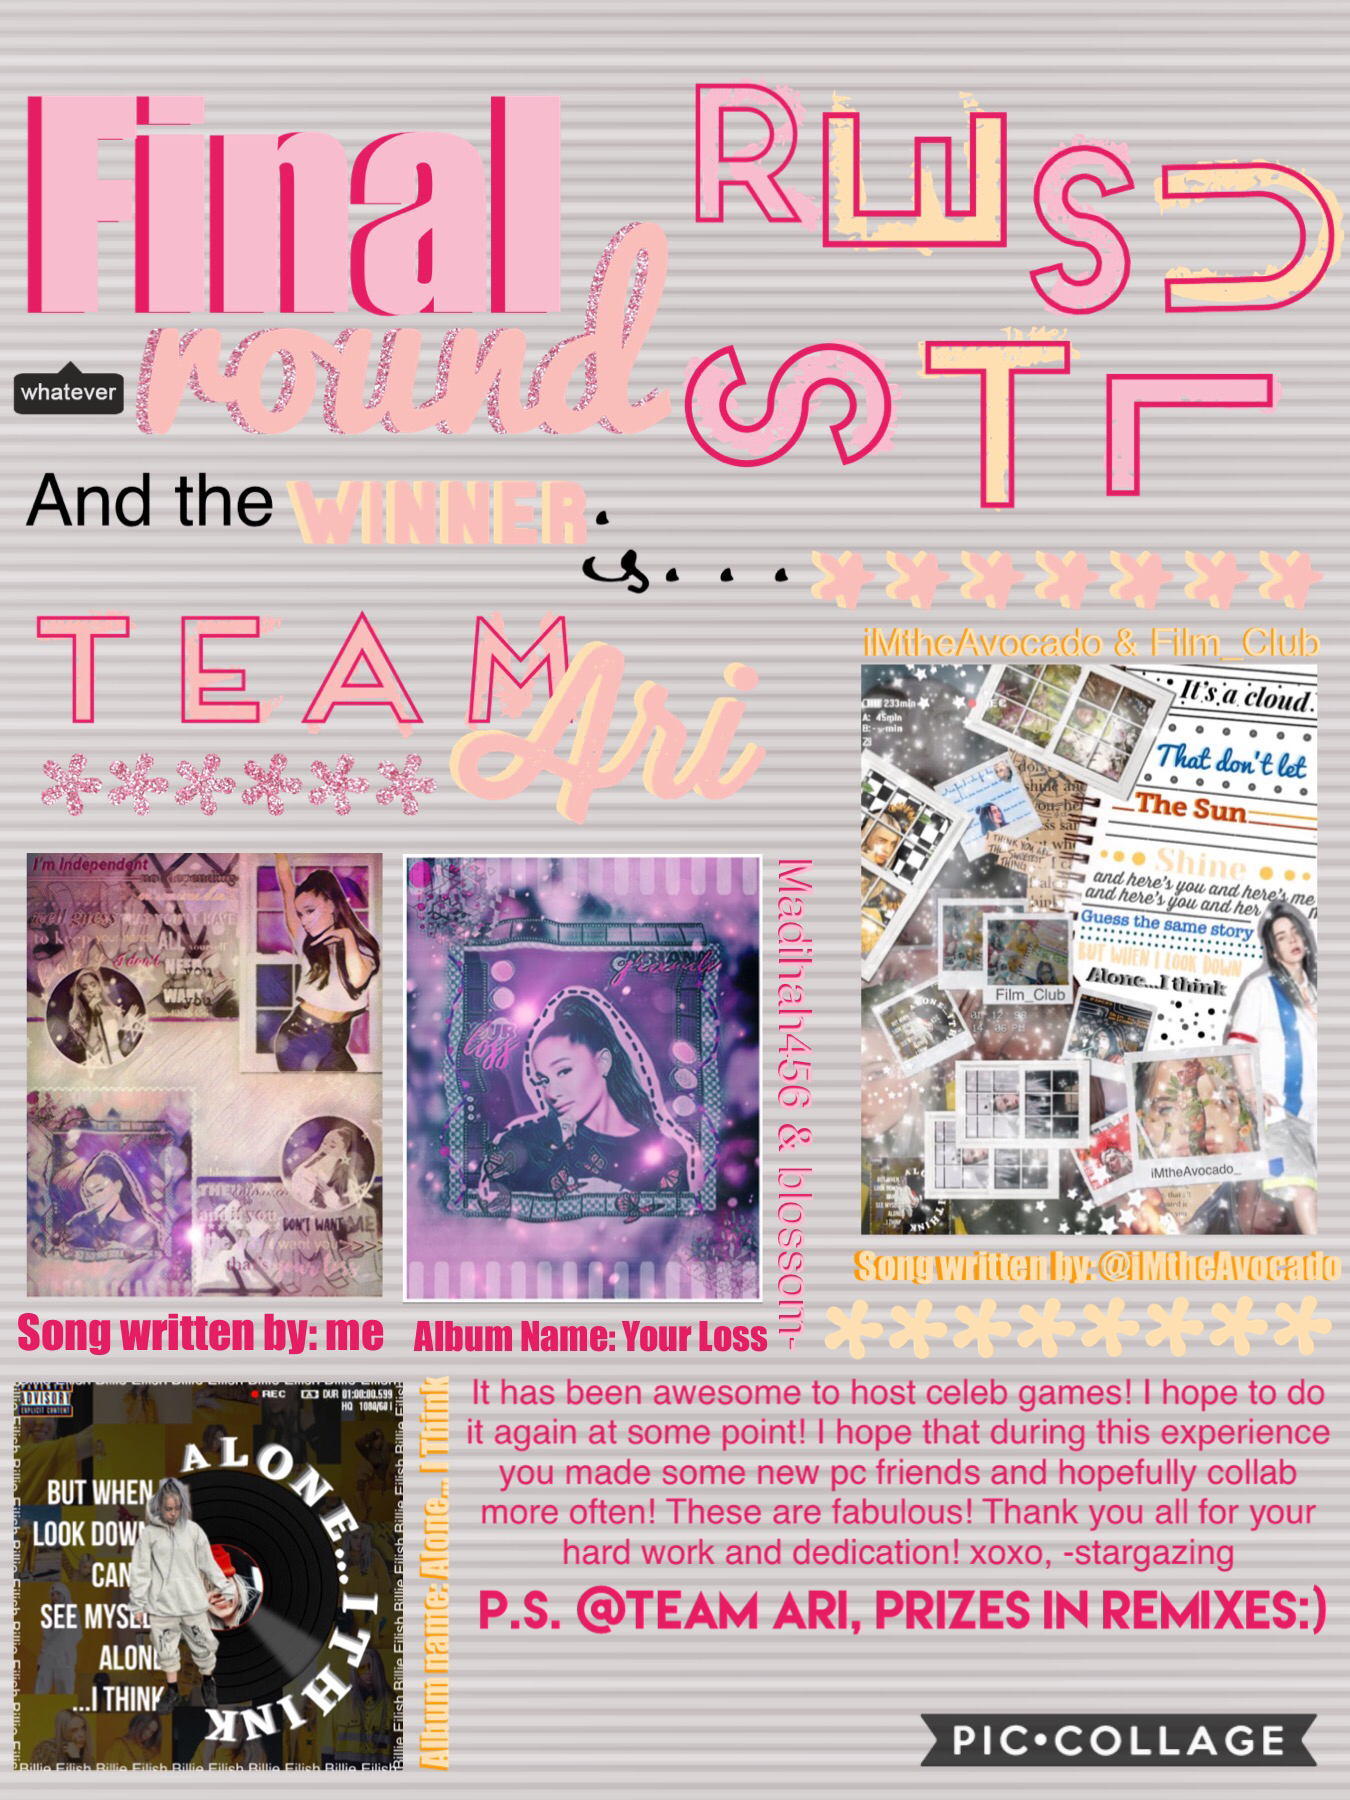 🌸TAP🌸 Way to go team Ari!💗you made won 3 rounds!🤩🤯 prizes are in remixes🌈💞 @Team Billie: you did an amazing job!🌺 you made it so far and it was a very tough decision😅 you did great!👍